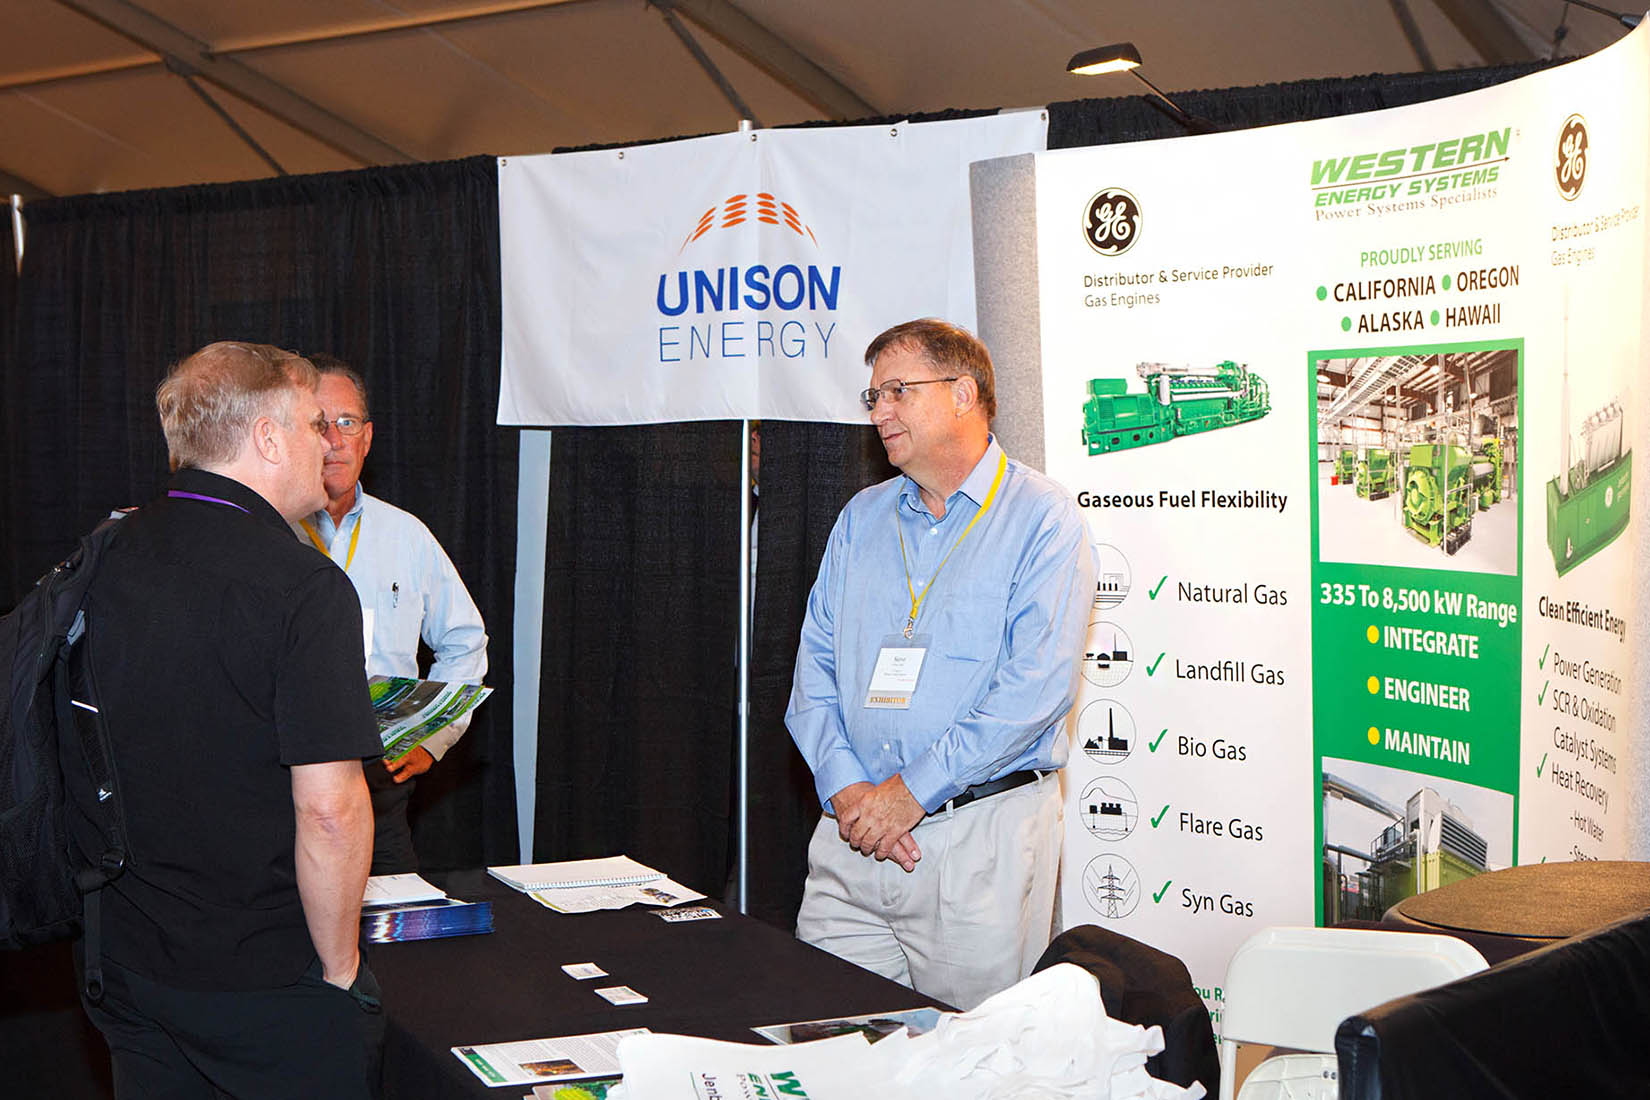 vendors speaking to a seminar attendee